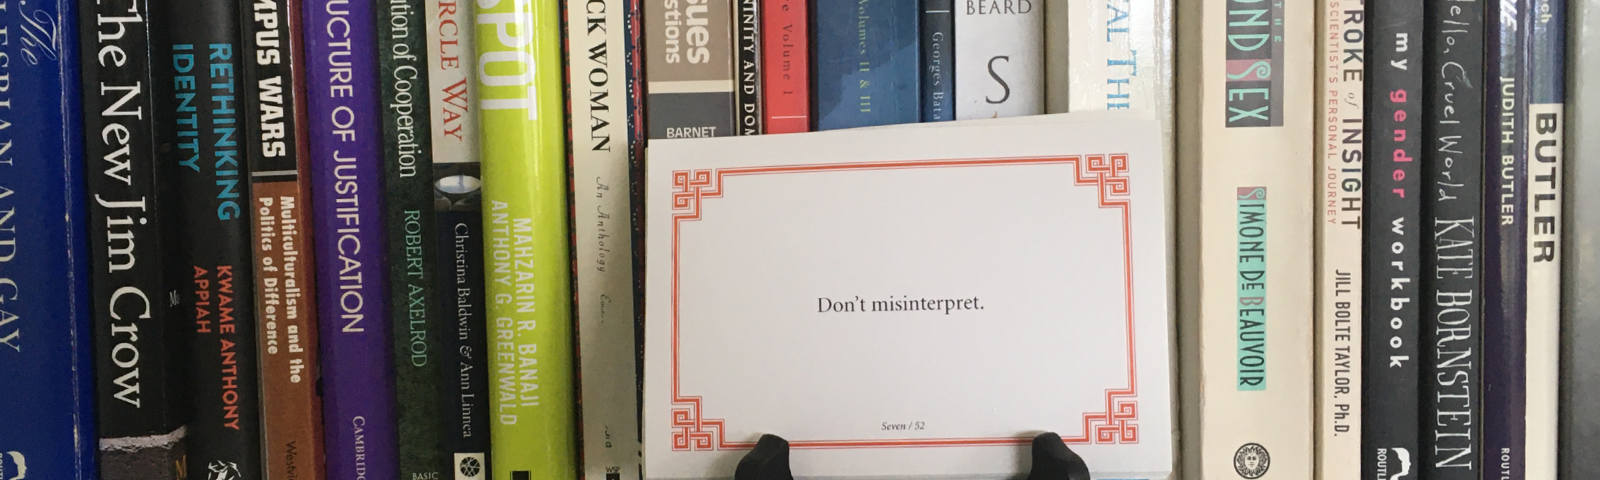 Lojong slogan card on a black card stand on a white bookshelf with books behind it. Card reads: Don't misinterpret